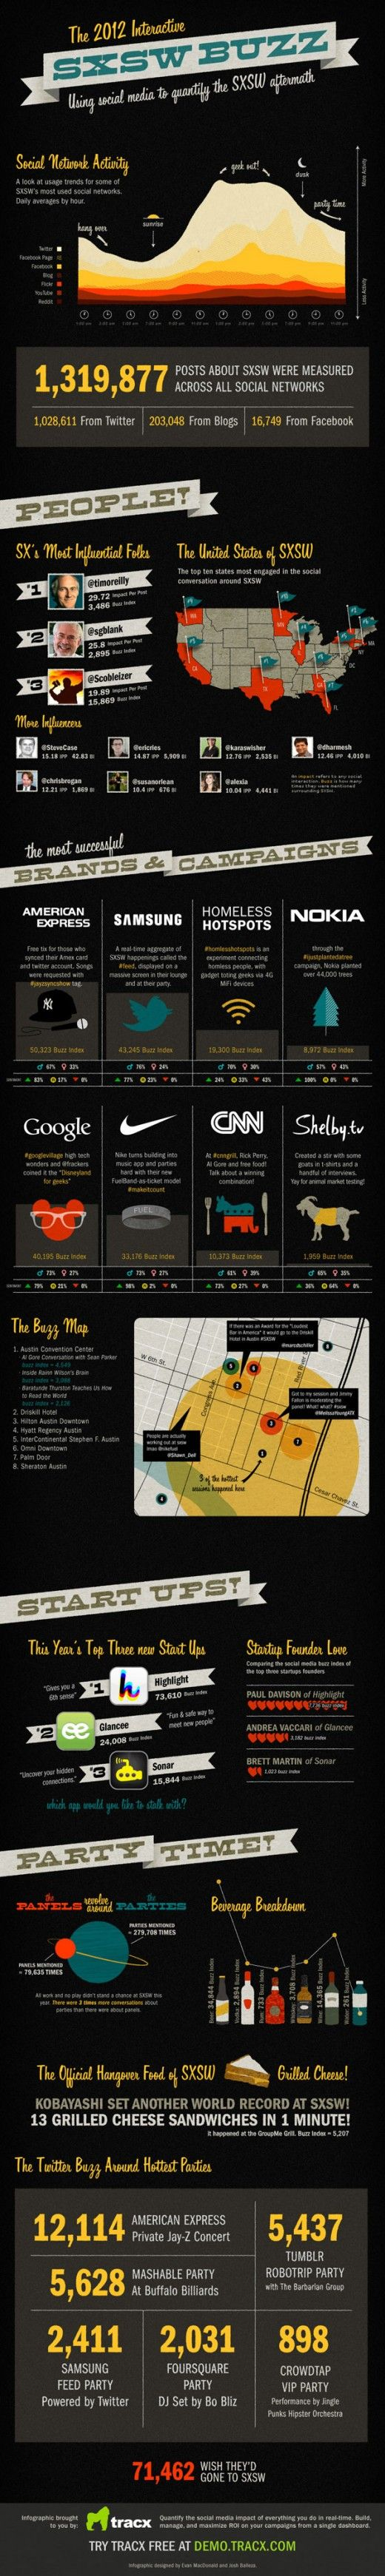 The Ultimate SXSW infographic: The most popular influencers, parties, brand campaigns and more